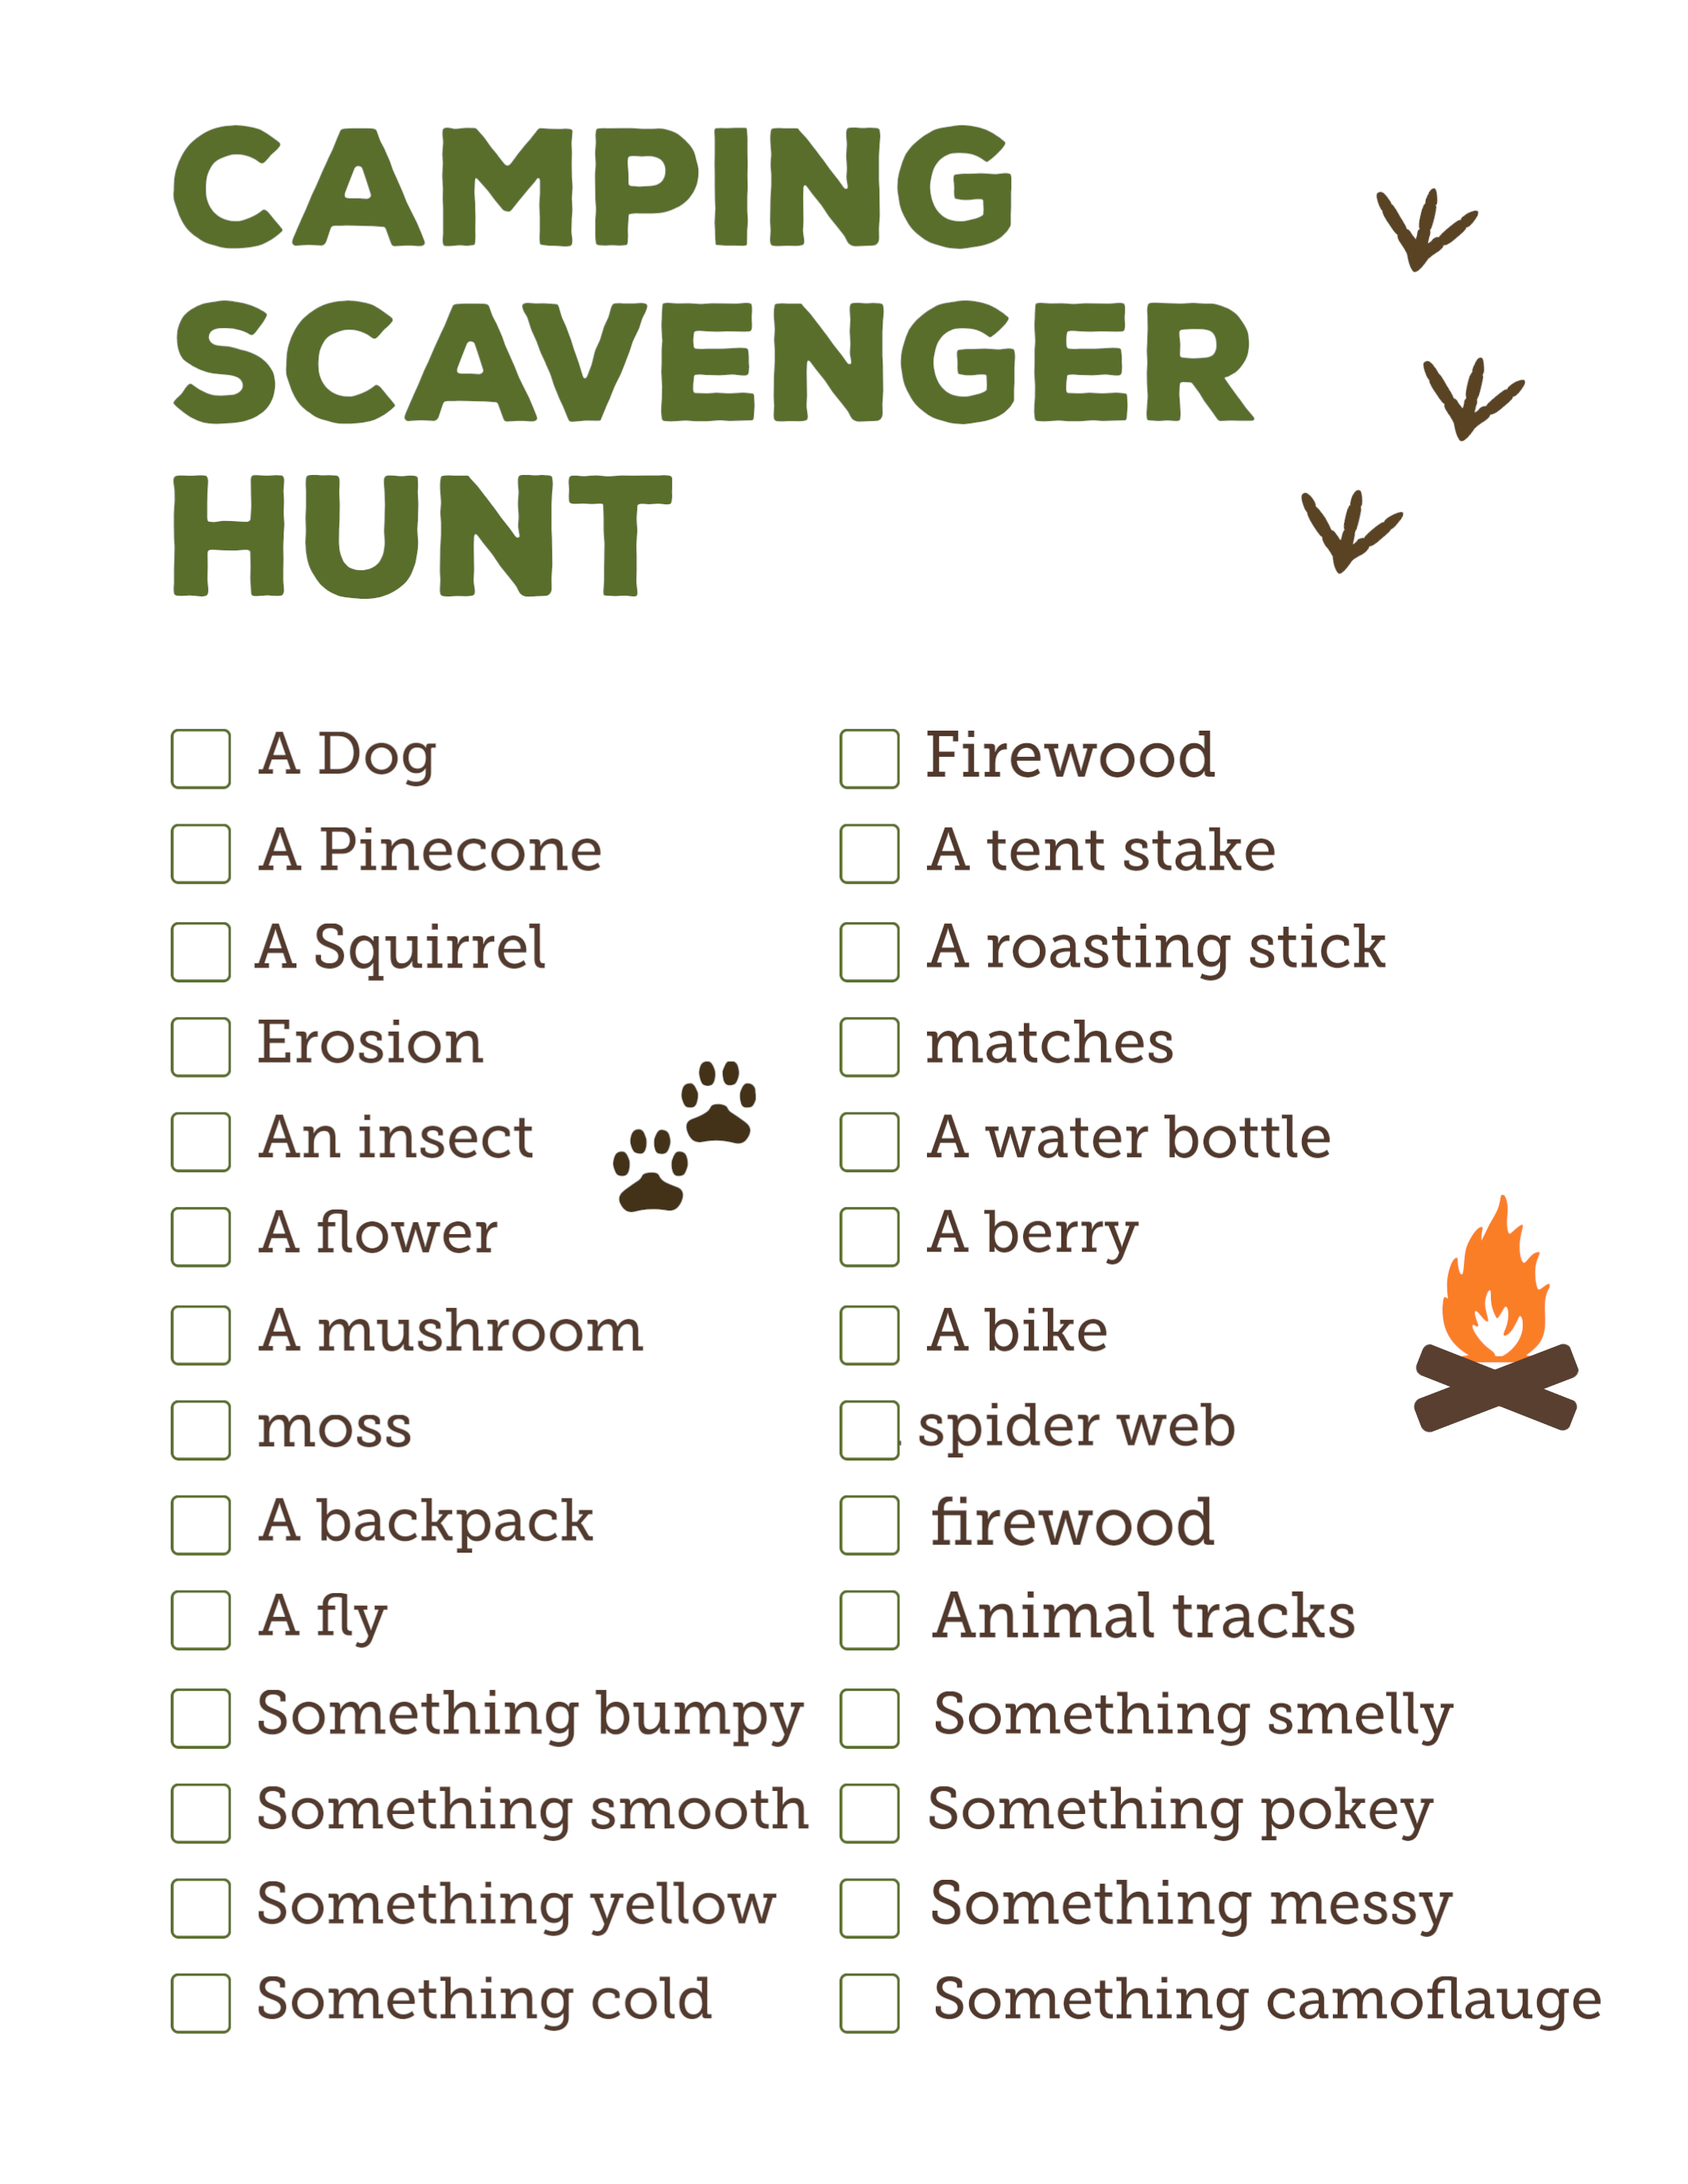 scavenger hunt things you could find camping